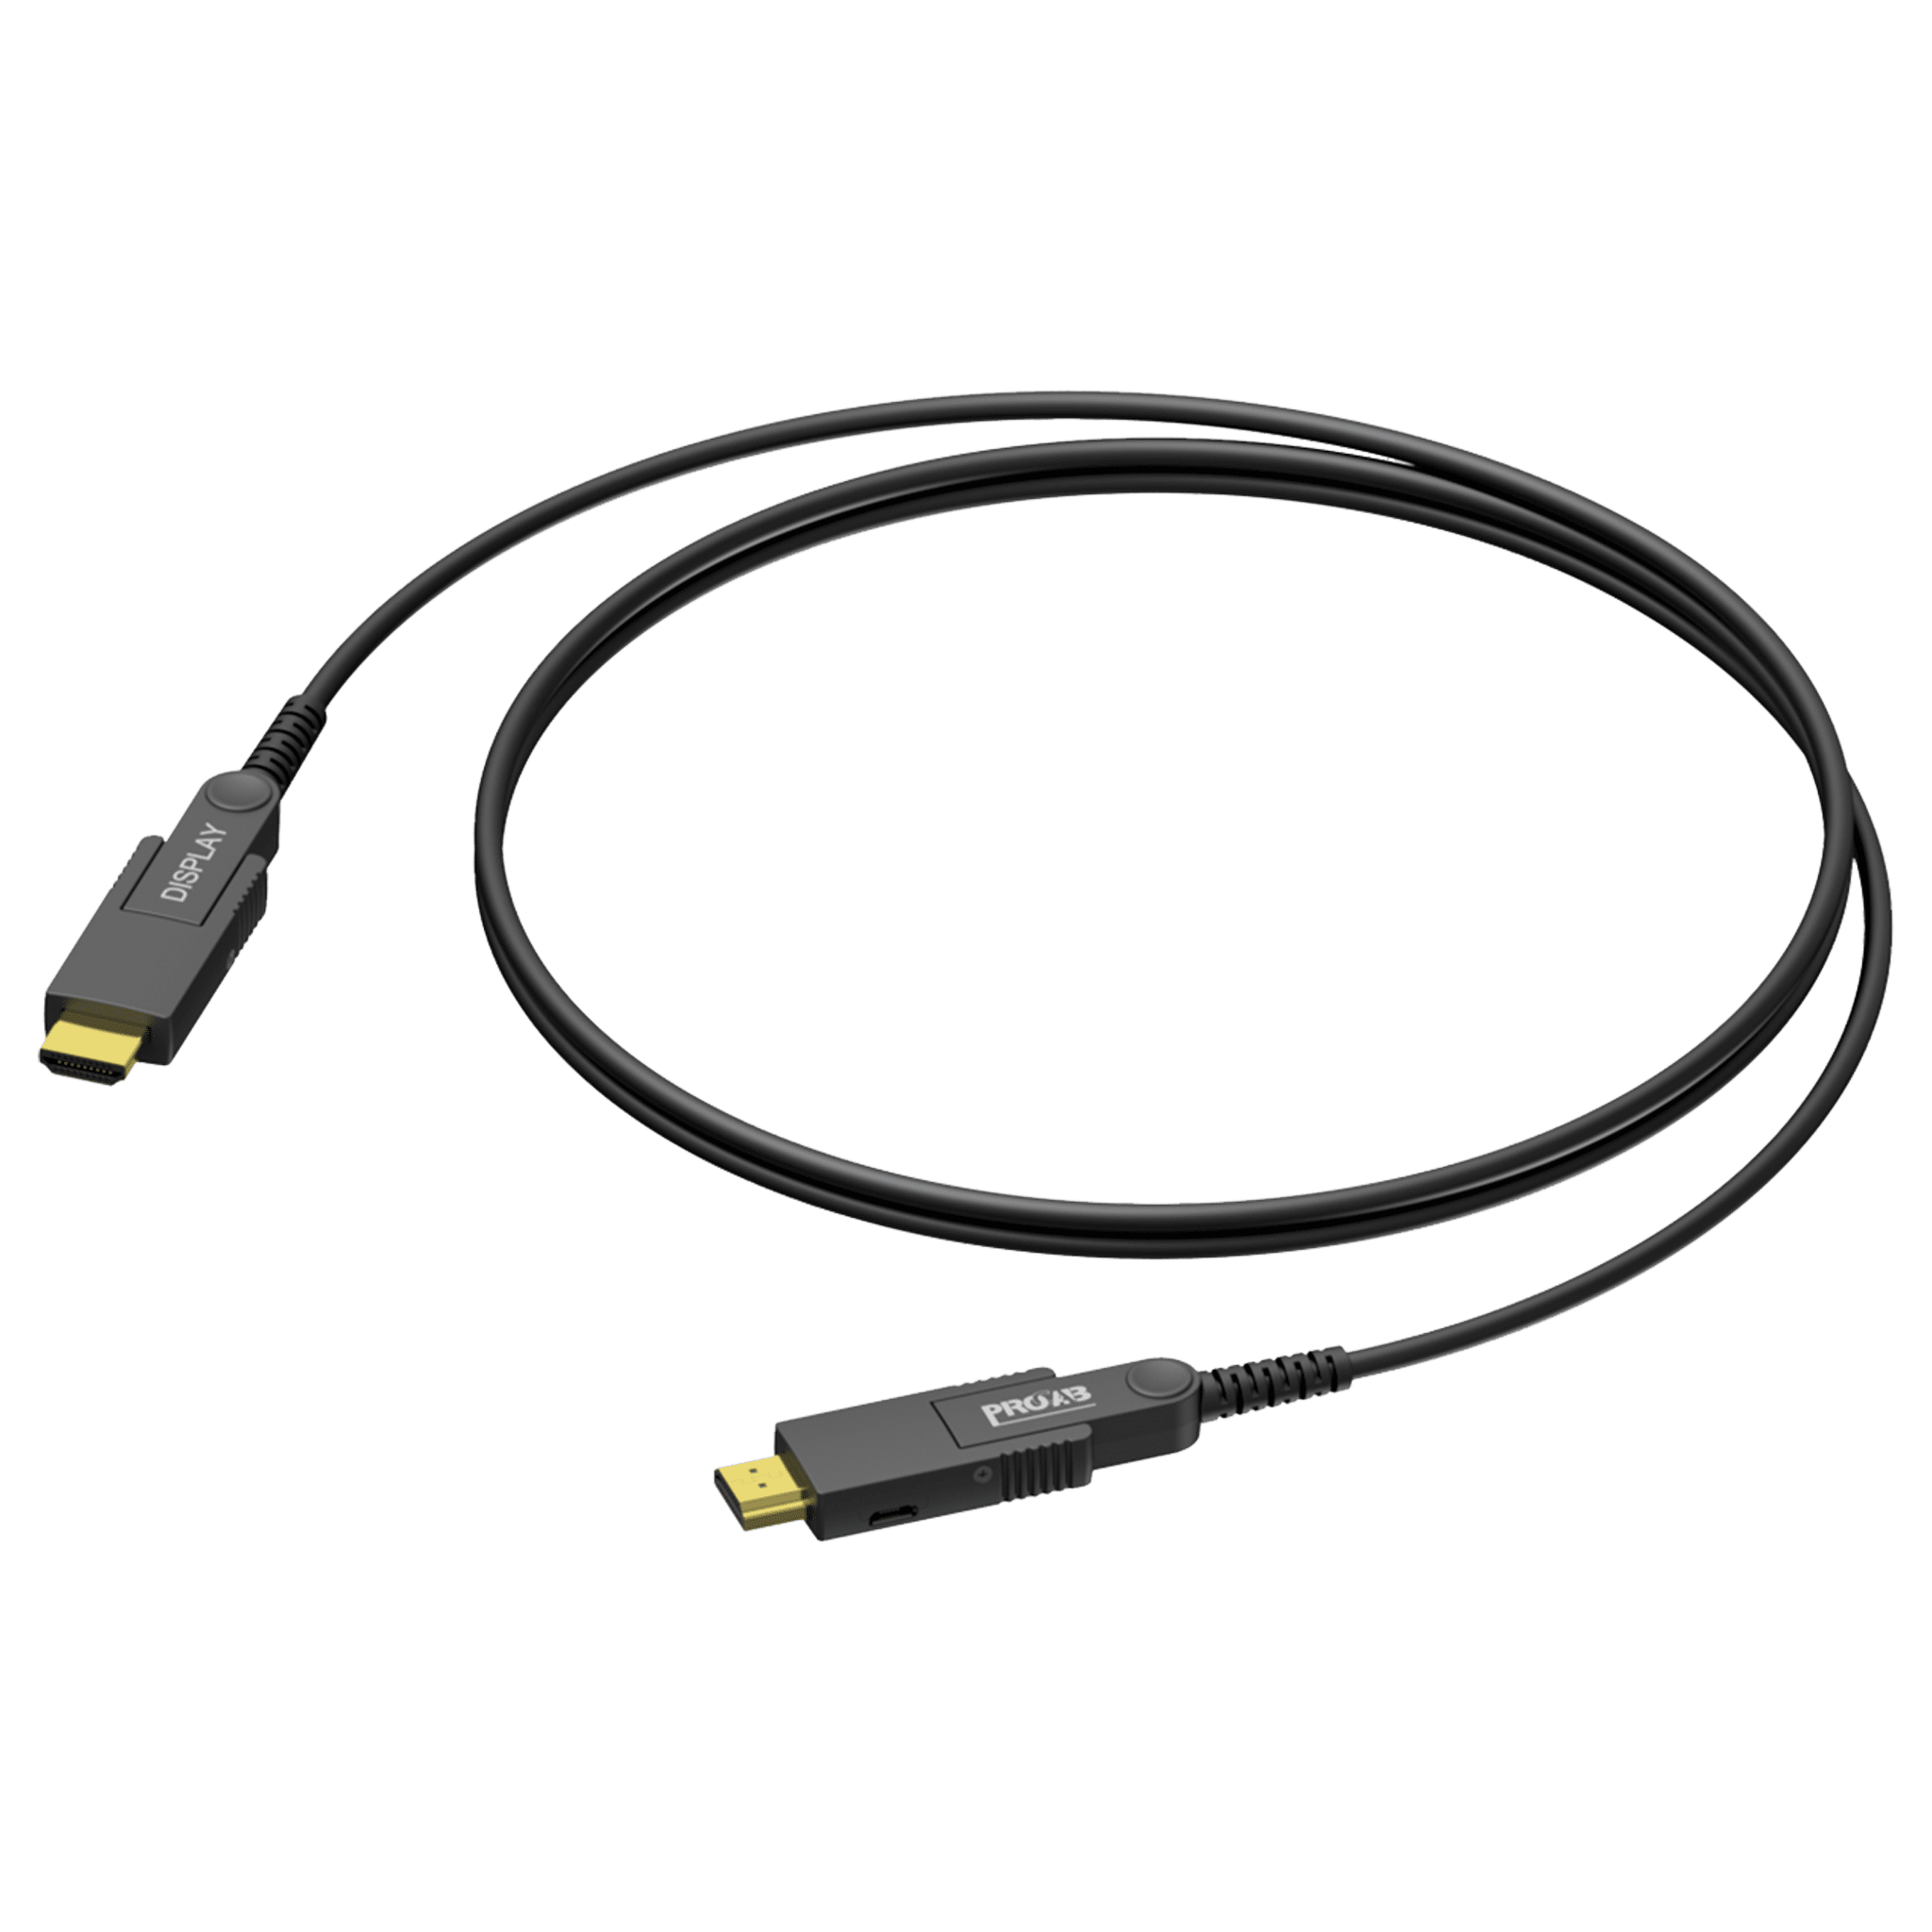 CLV220A - HDMI A male - HDMI A male - Active optical - Interchangeable connectors